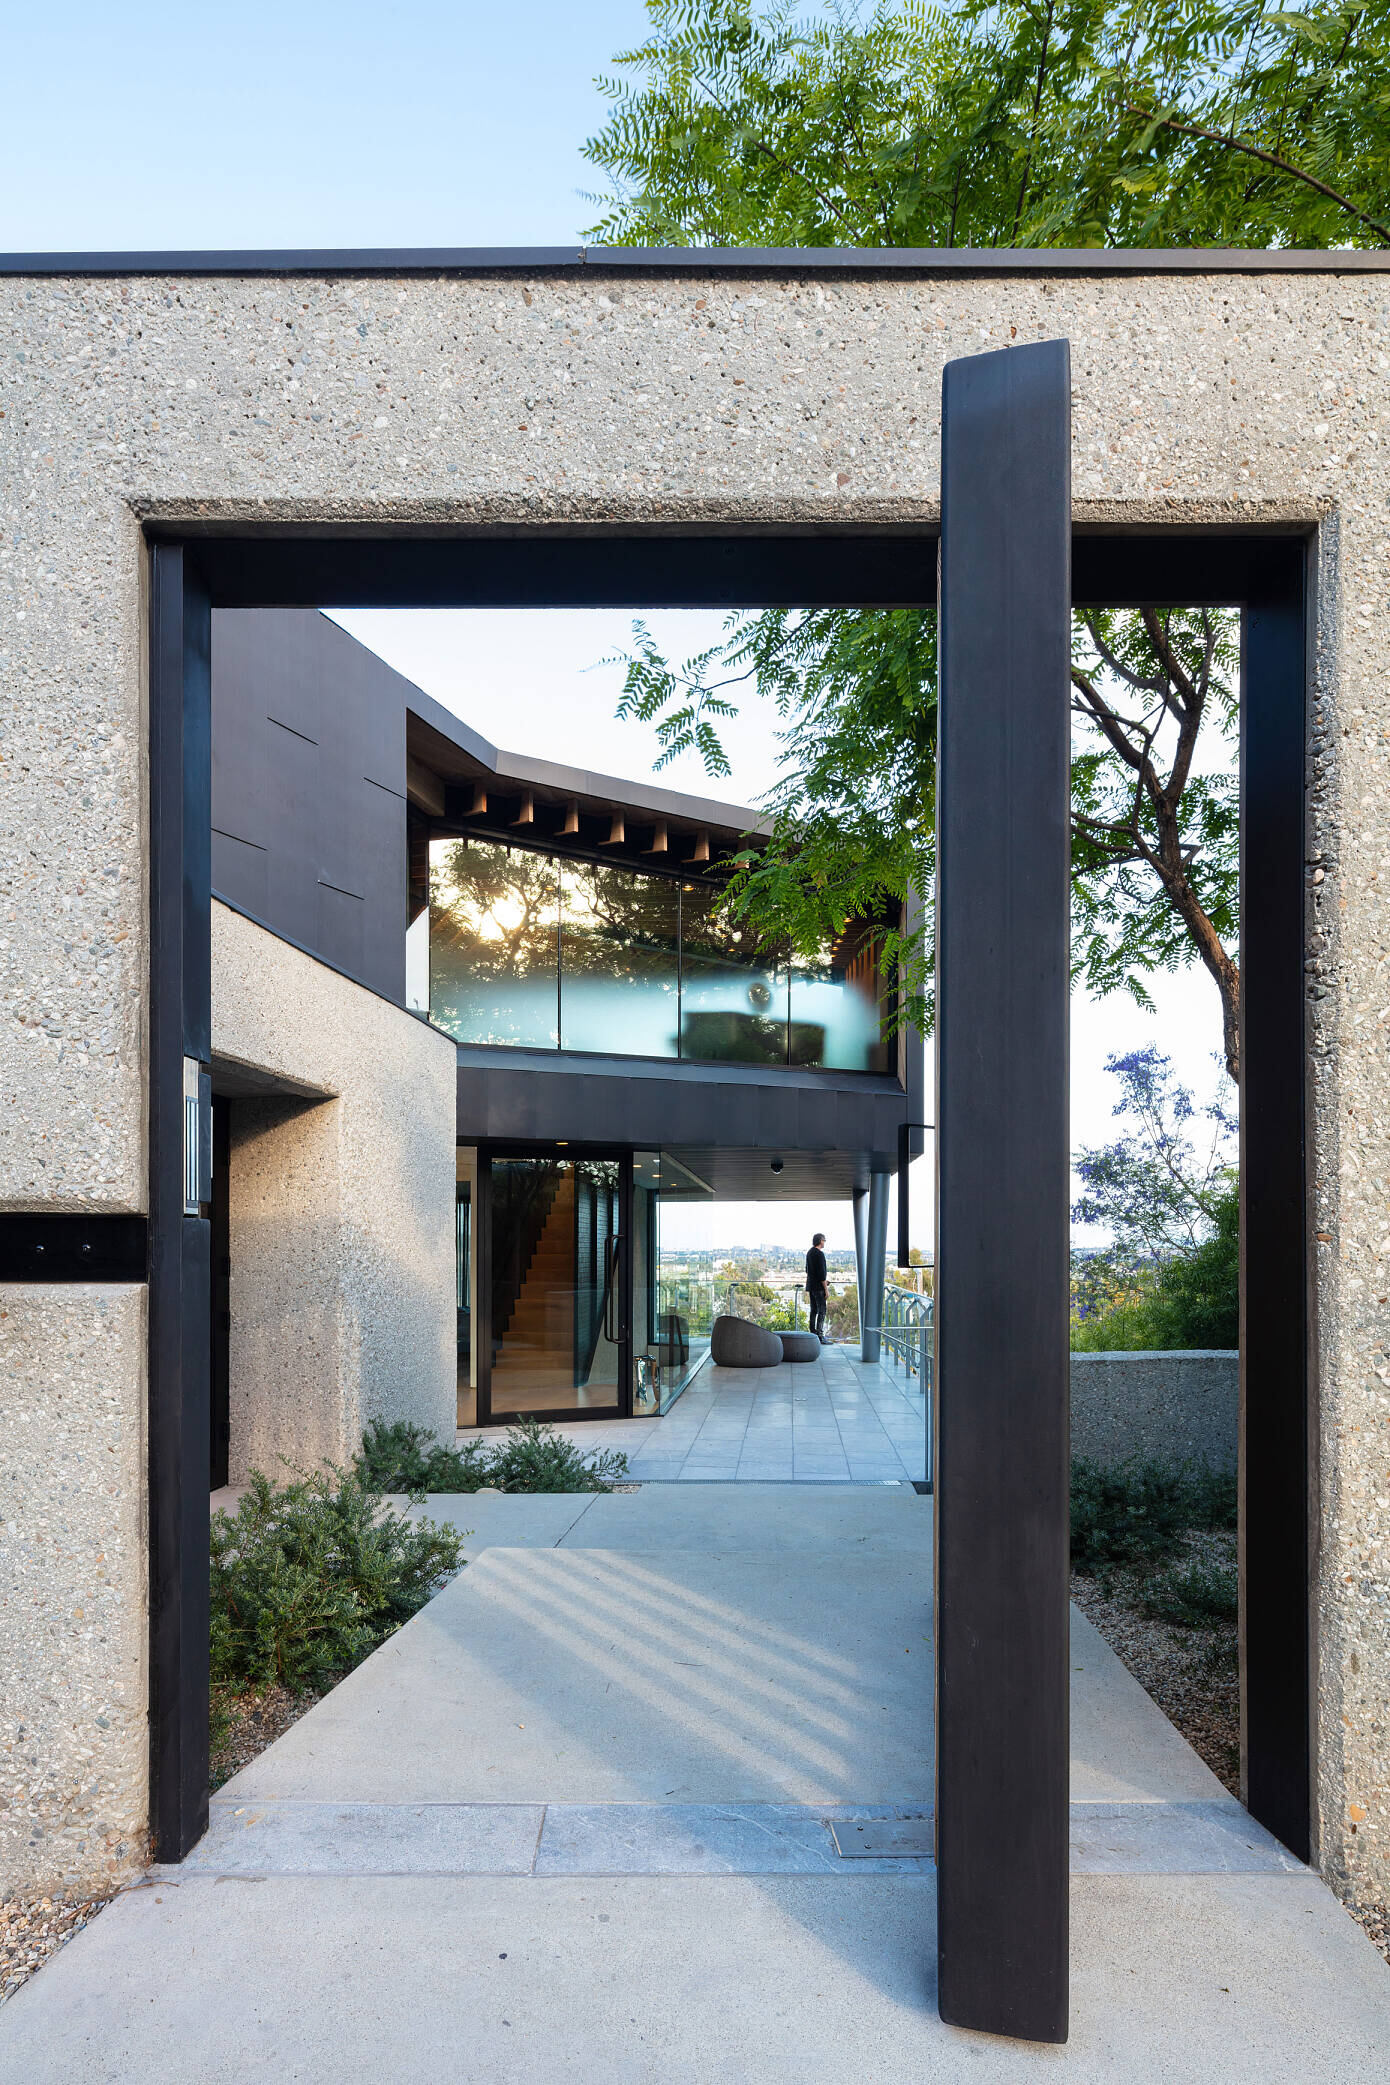 West Los Angeles Residence by Clive Wilkinson Architects